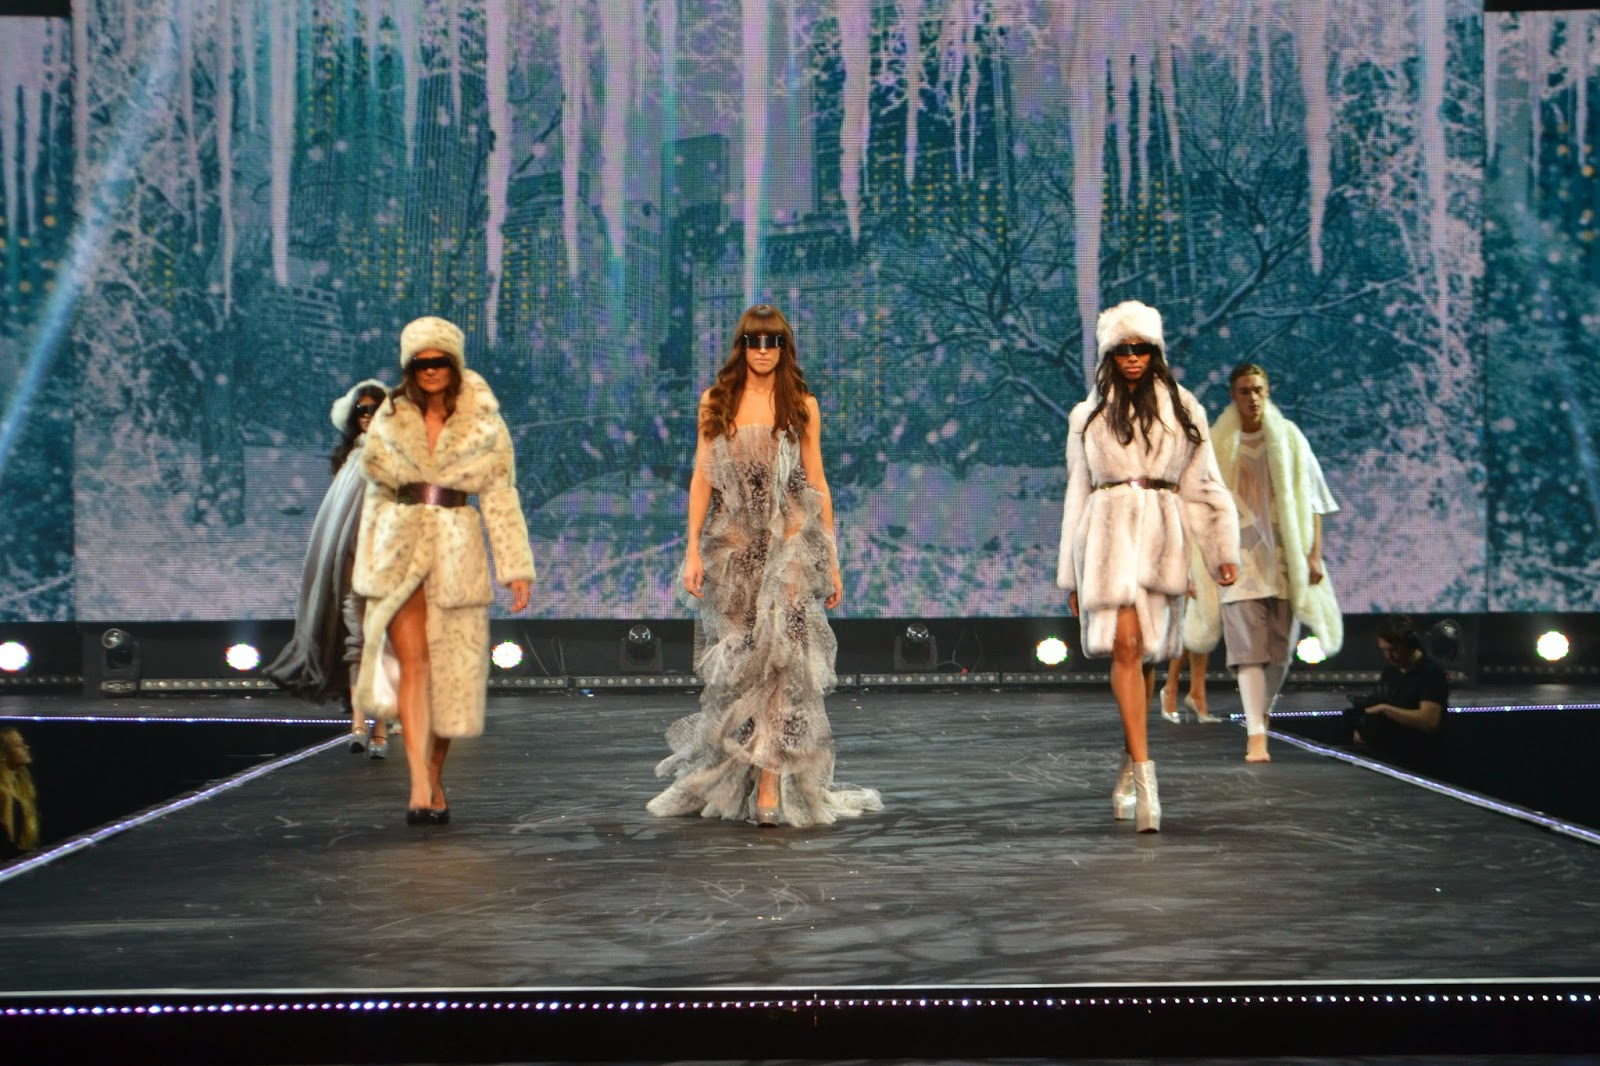 5 models walking down the cat walk wearing winter clothing